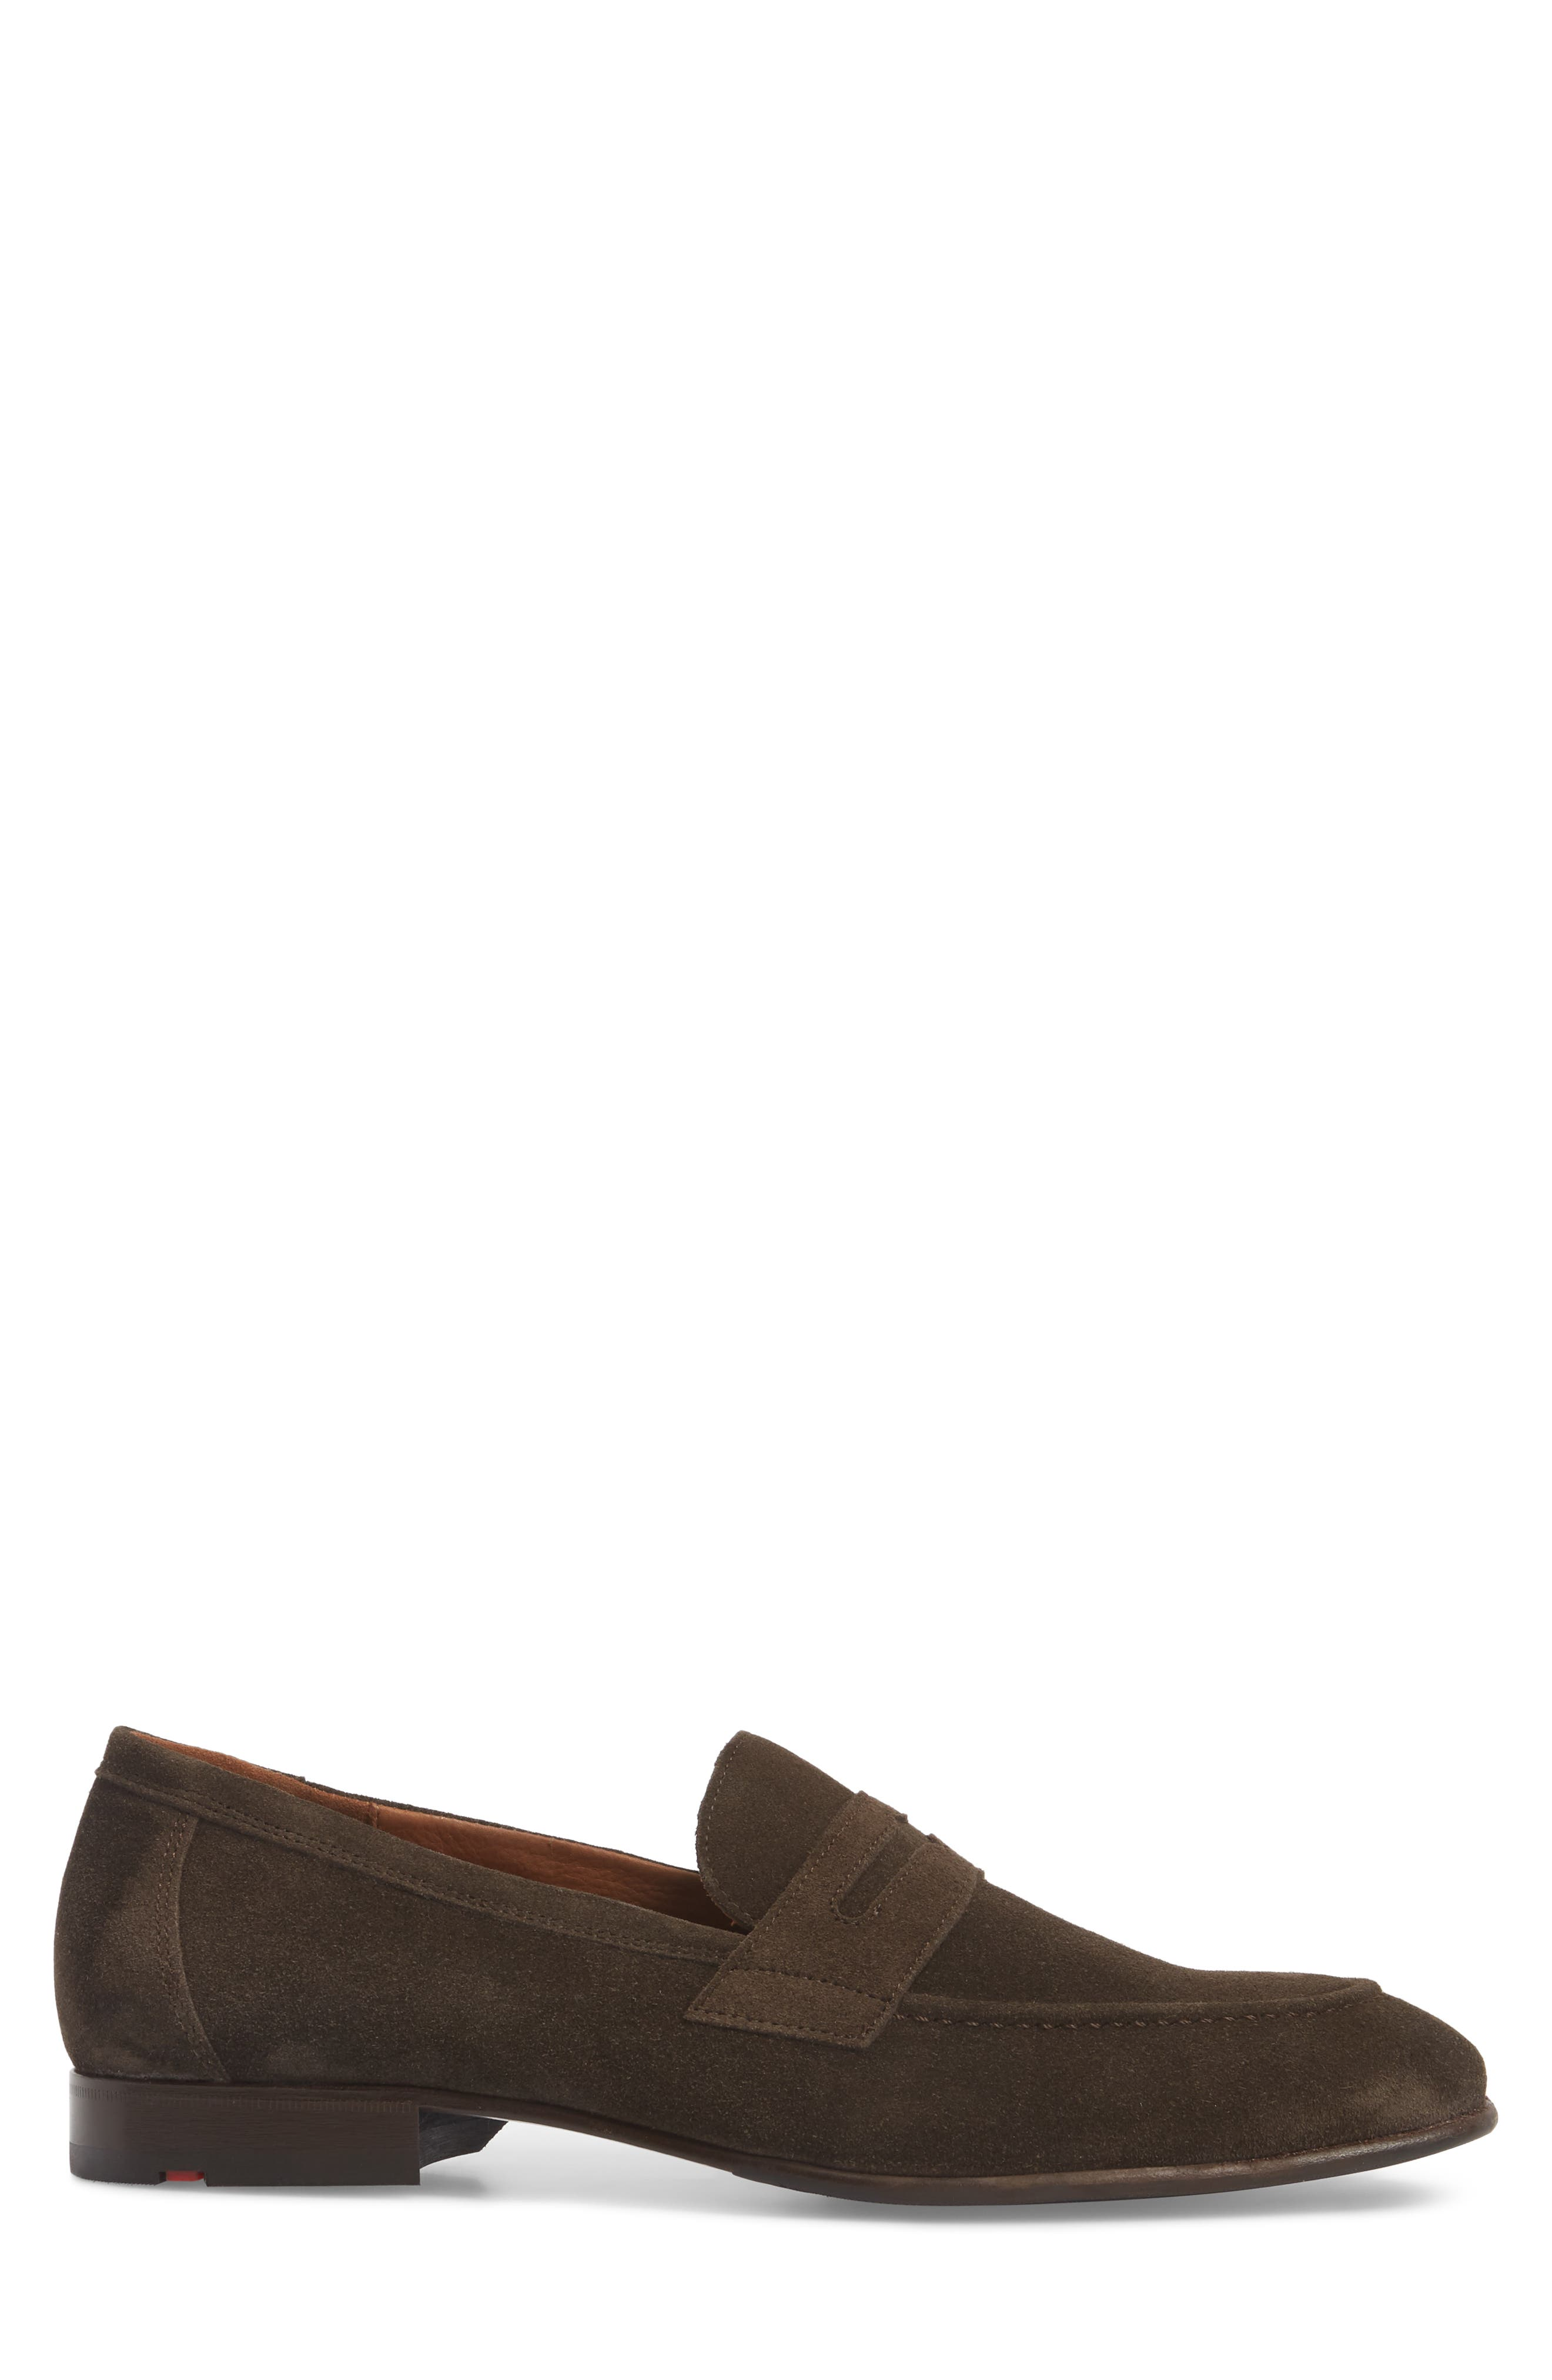 Paxton Penny Loafer,                             Alternate thumbnail 3, color,                             BROWN SUEDE